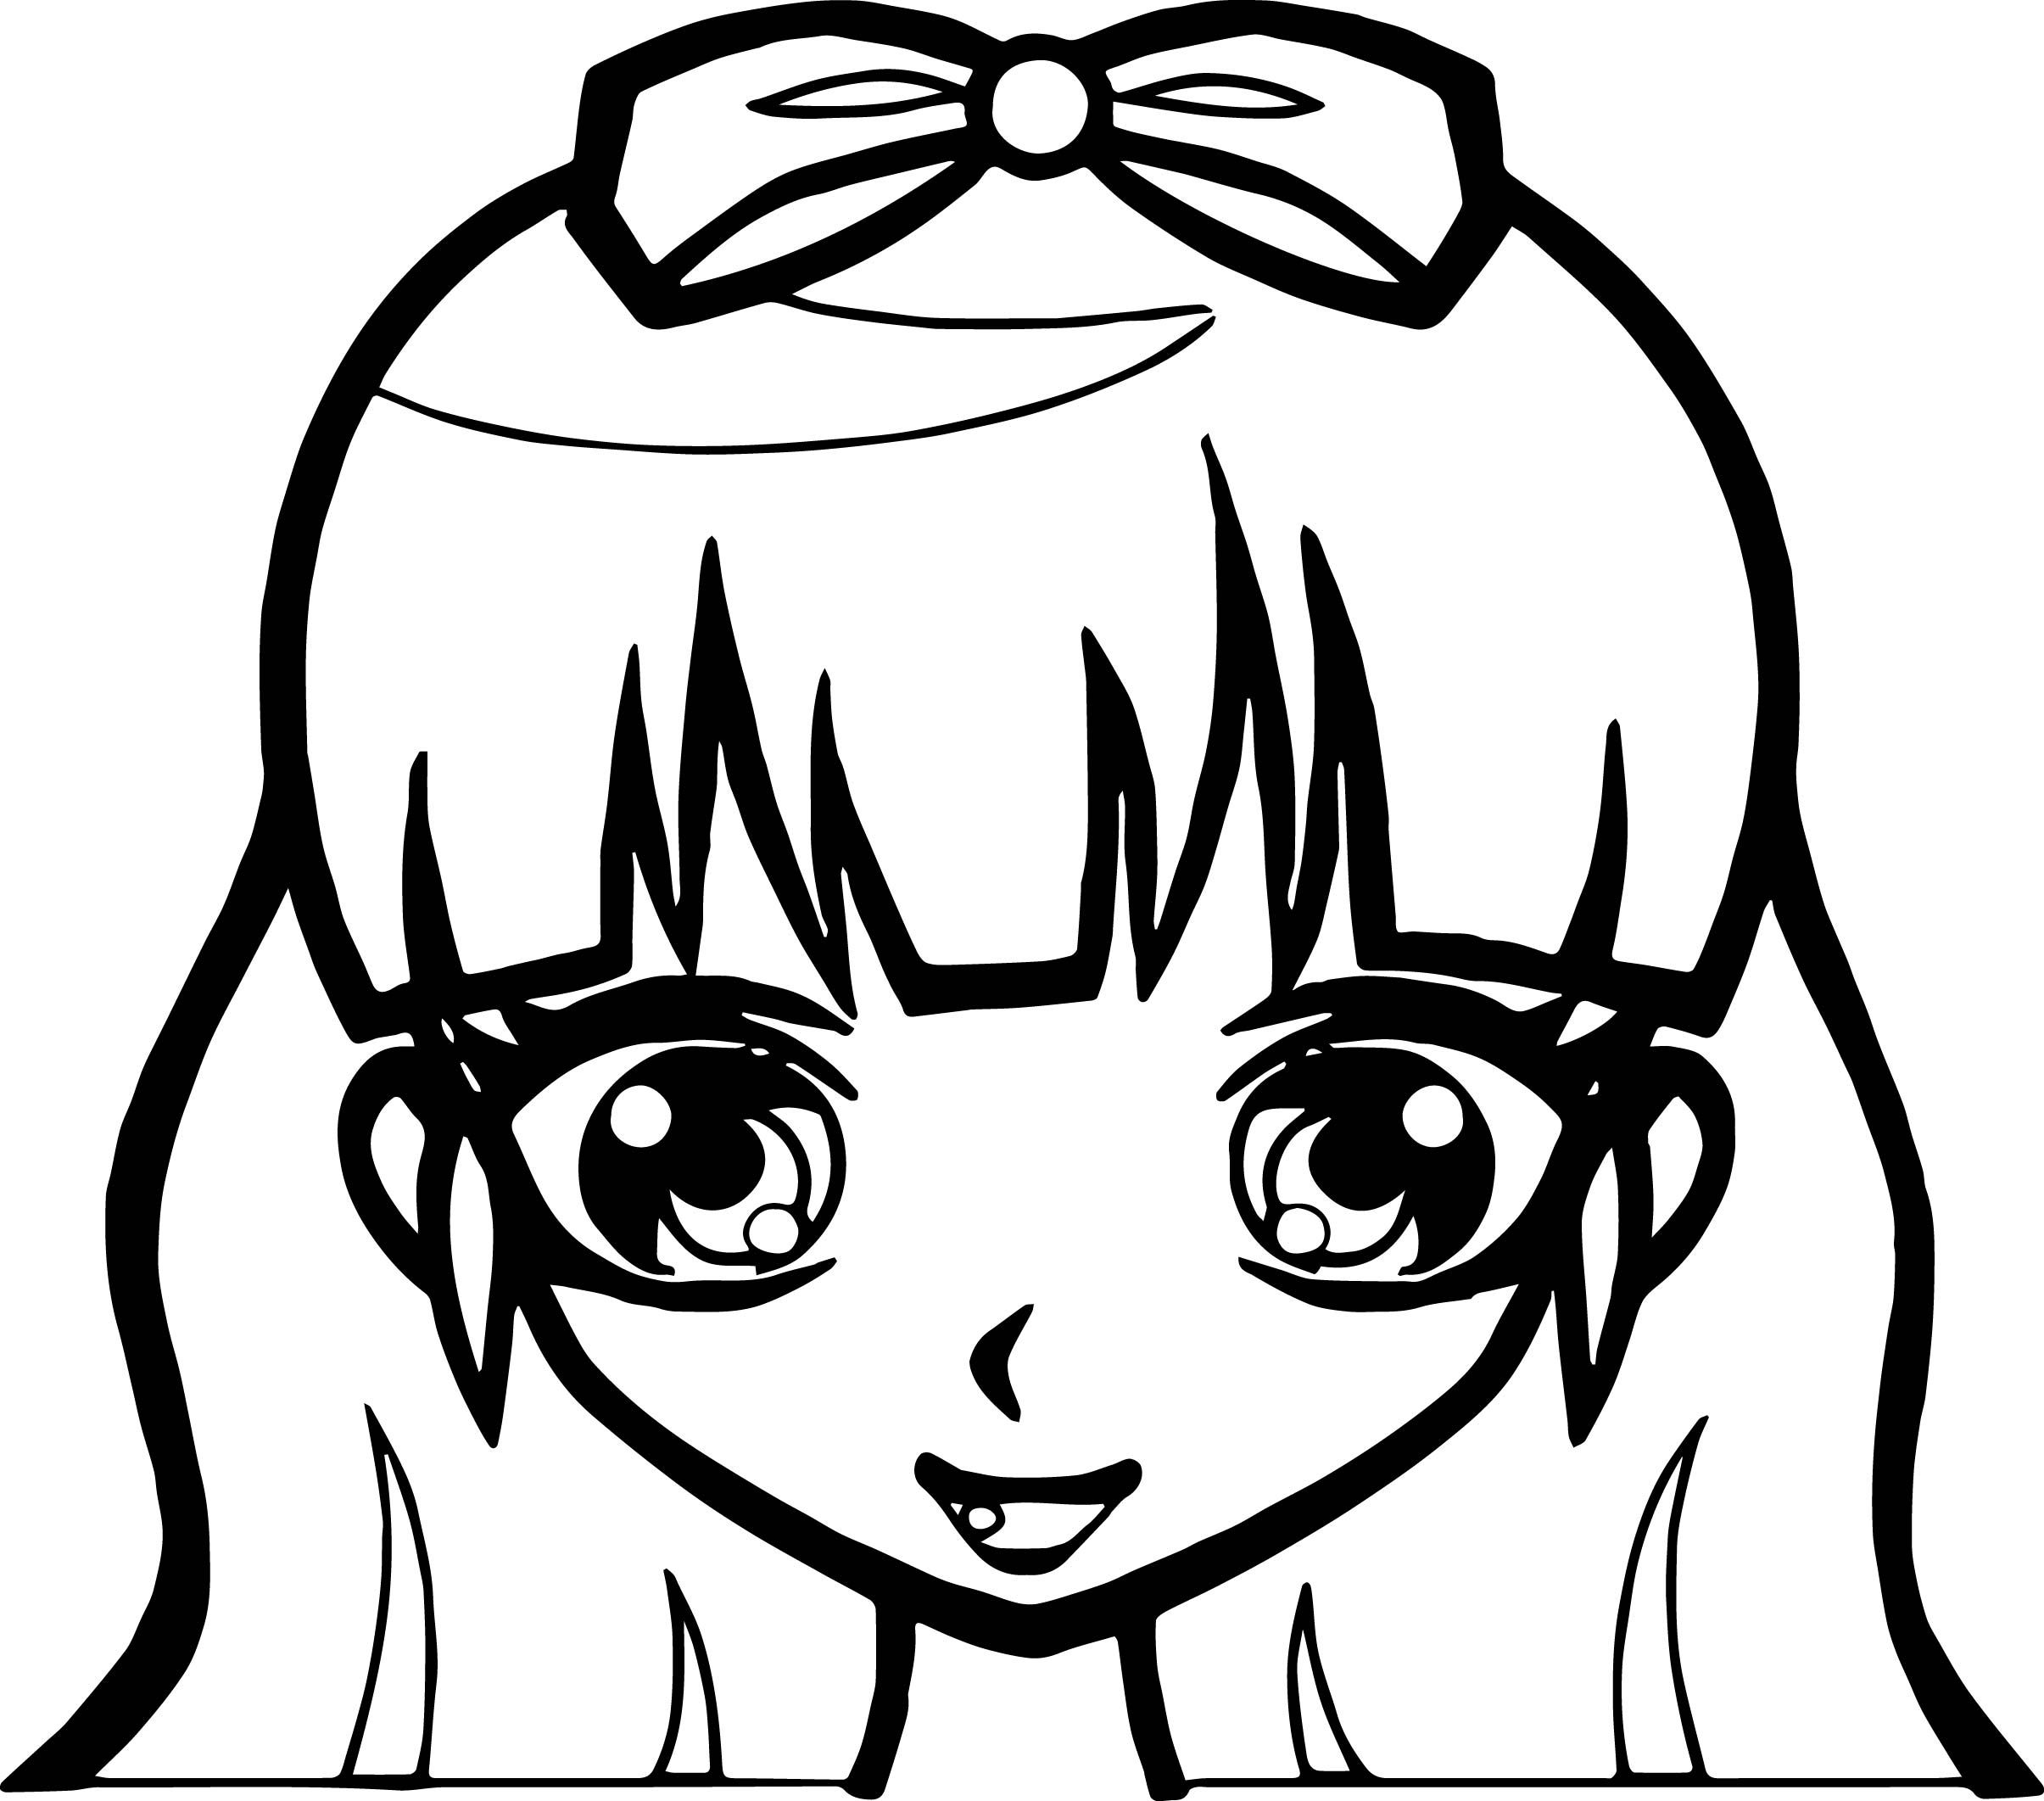 Awesome Manga Cute Girl Face Coloring Page Manga Cute Girl Face